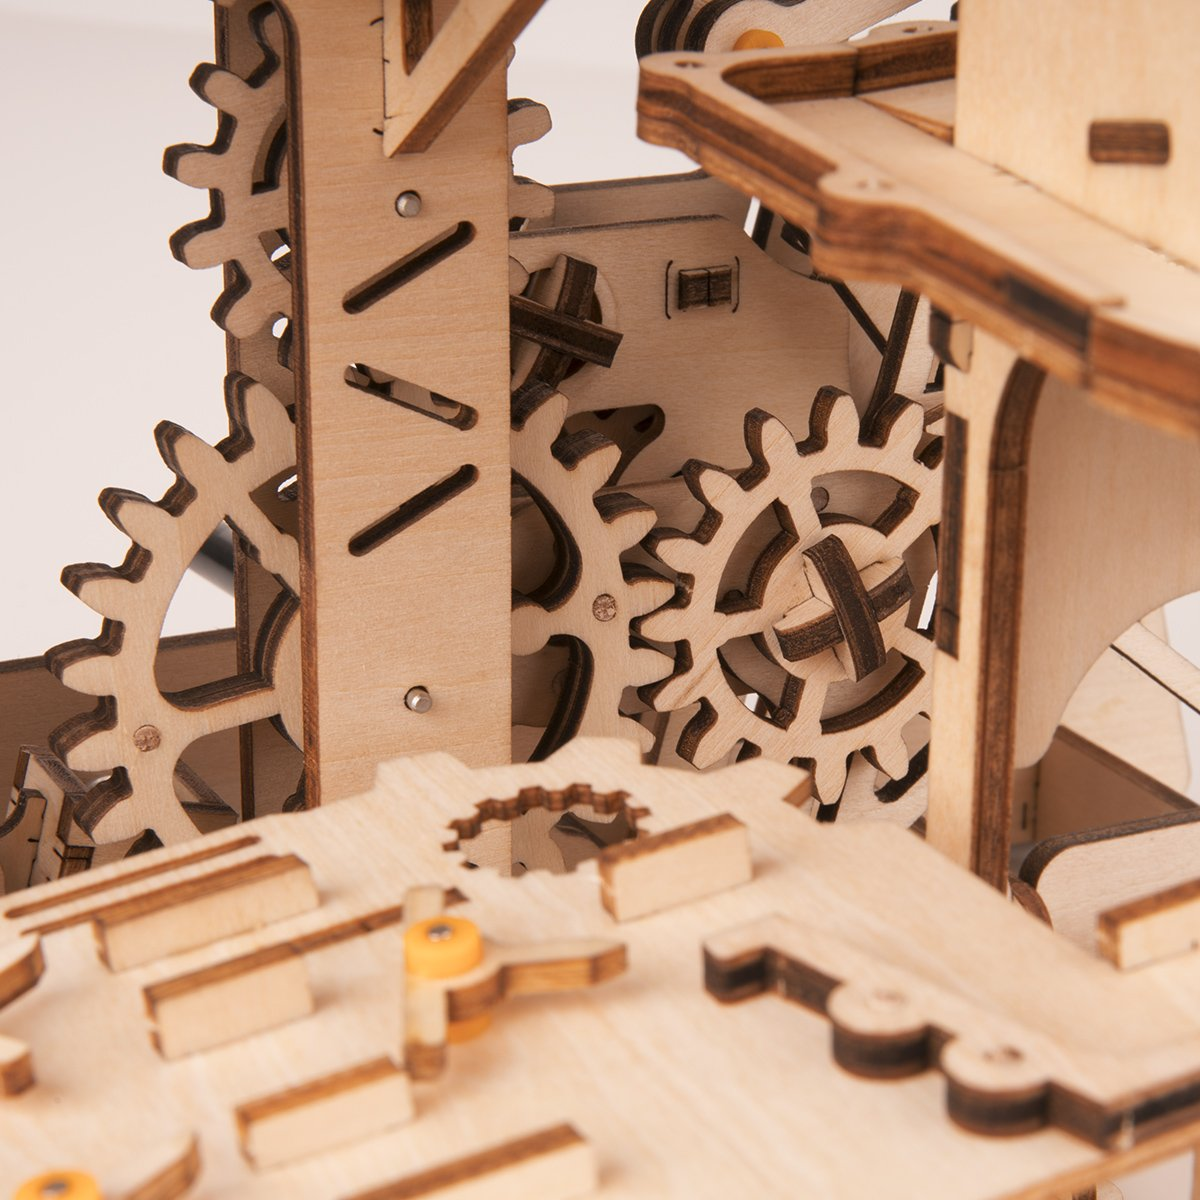 ROBOTIME 3D Wooden Puzzle Brain Teaser Toys Mechanical Gears Kit Unique Craft Kits Tower Coaster with Steel Balls Executive Desk Toys Best Gifts for Adults and Kids by ROBOTIME (Image #6)